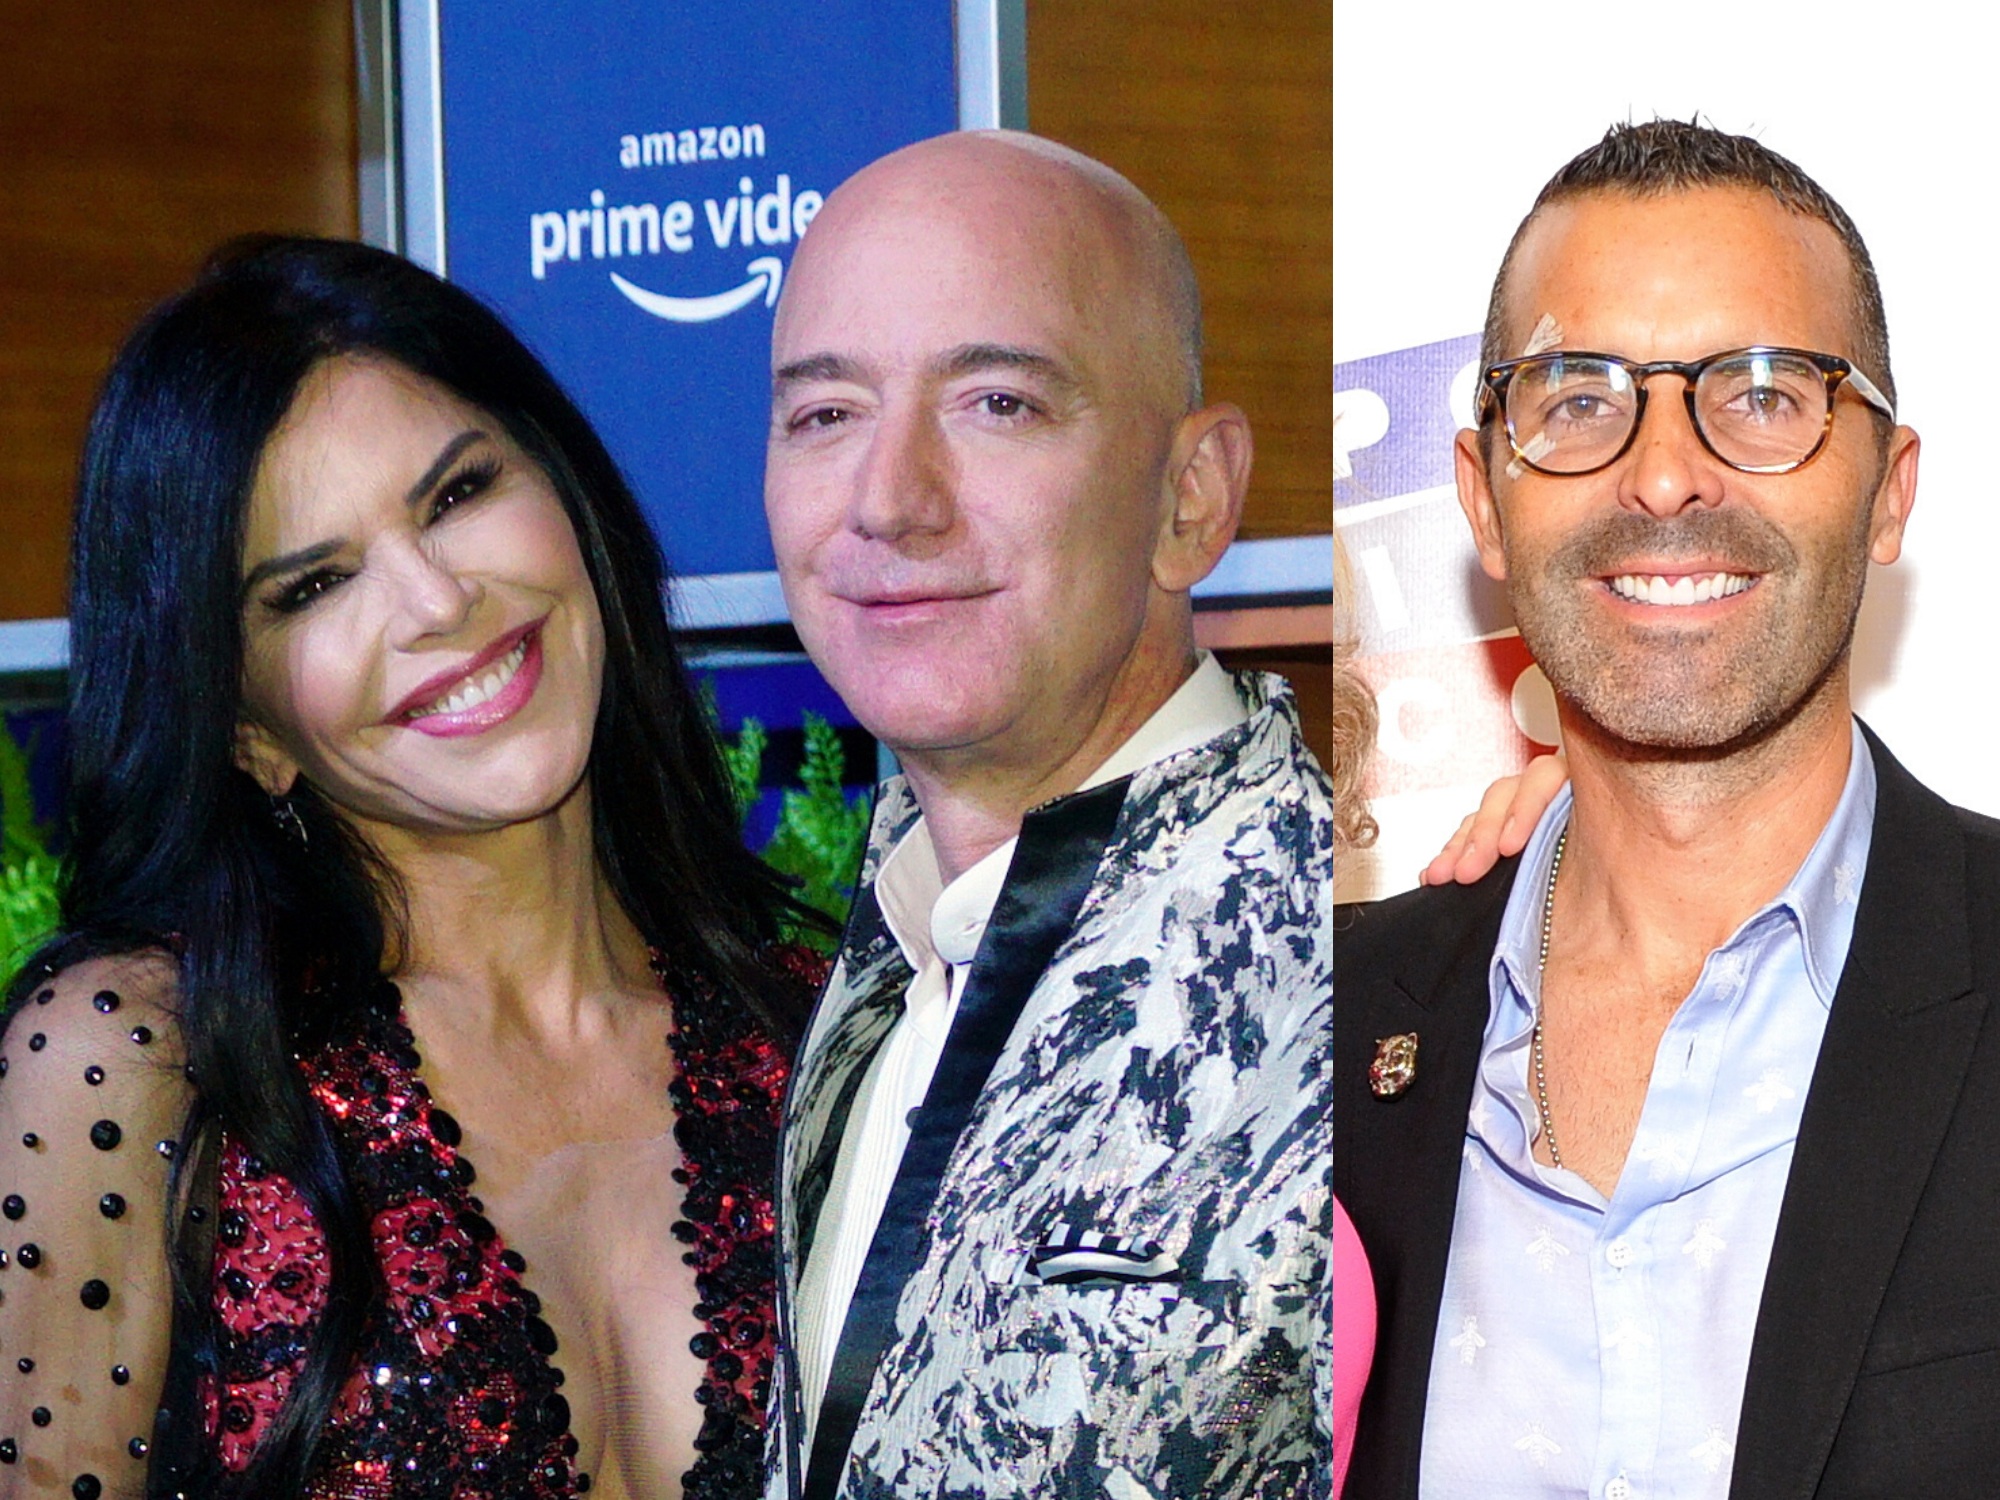 Jeff Bezos' girlfriend's brother is suing the Amazon CEO for defamation, claiming he was falsely accused of providing incriminating photos to the National Enquirer…